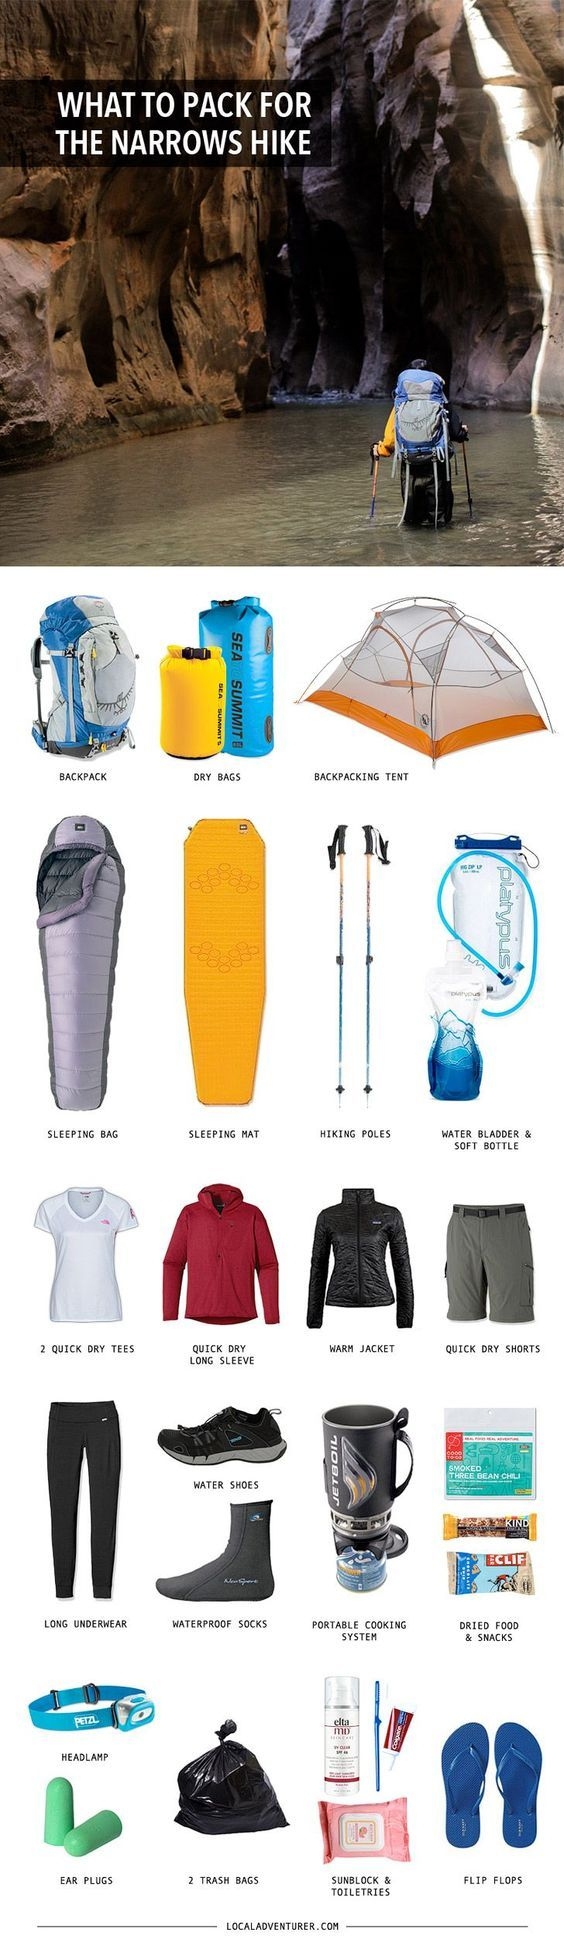 Backpacking Gear List for the Zion Narrows Hike Top Down. camping gear, best camping gear #camping